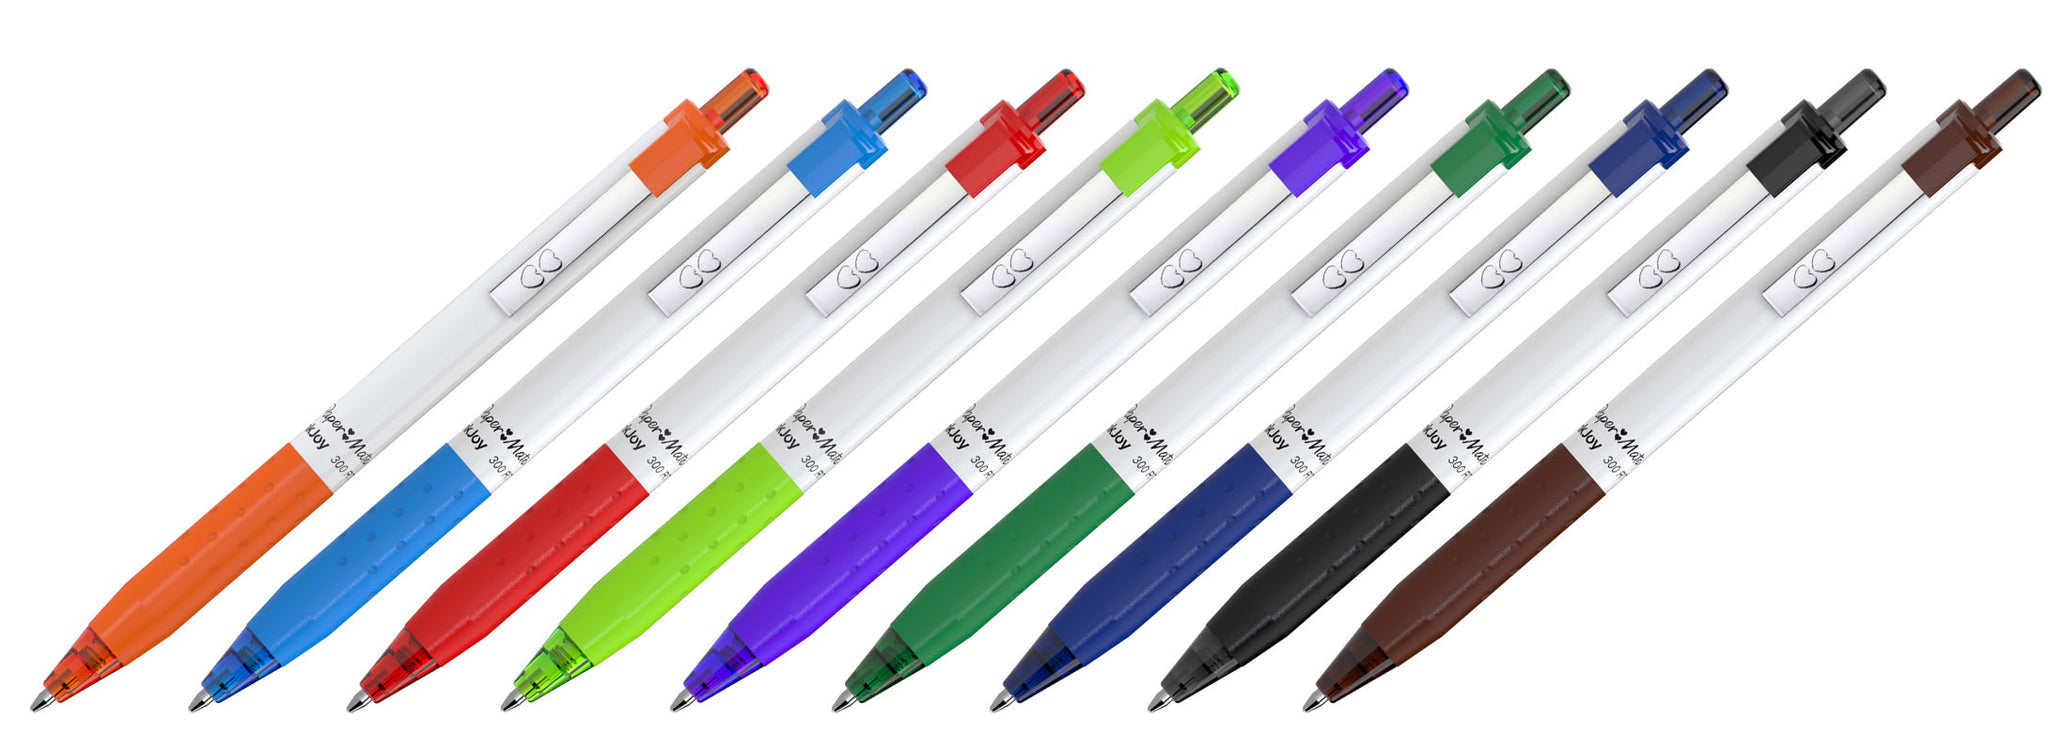 White Barrel Retractable Pens with Colored Inks